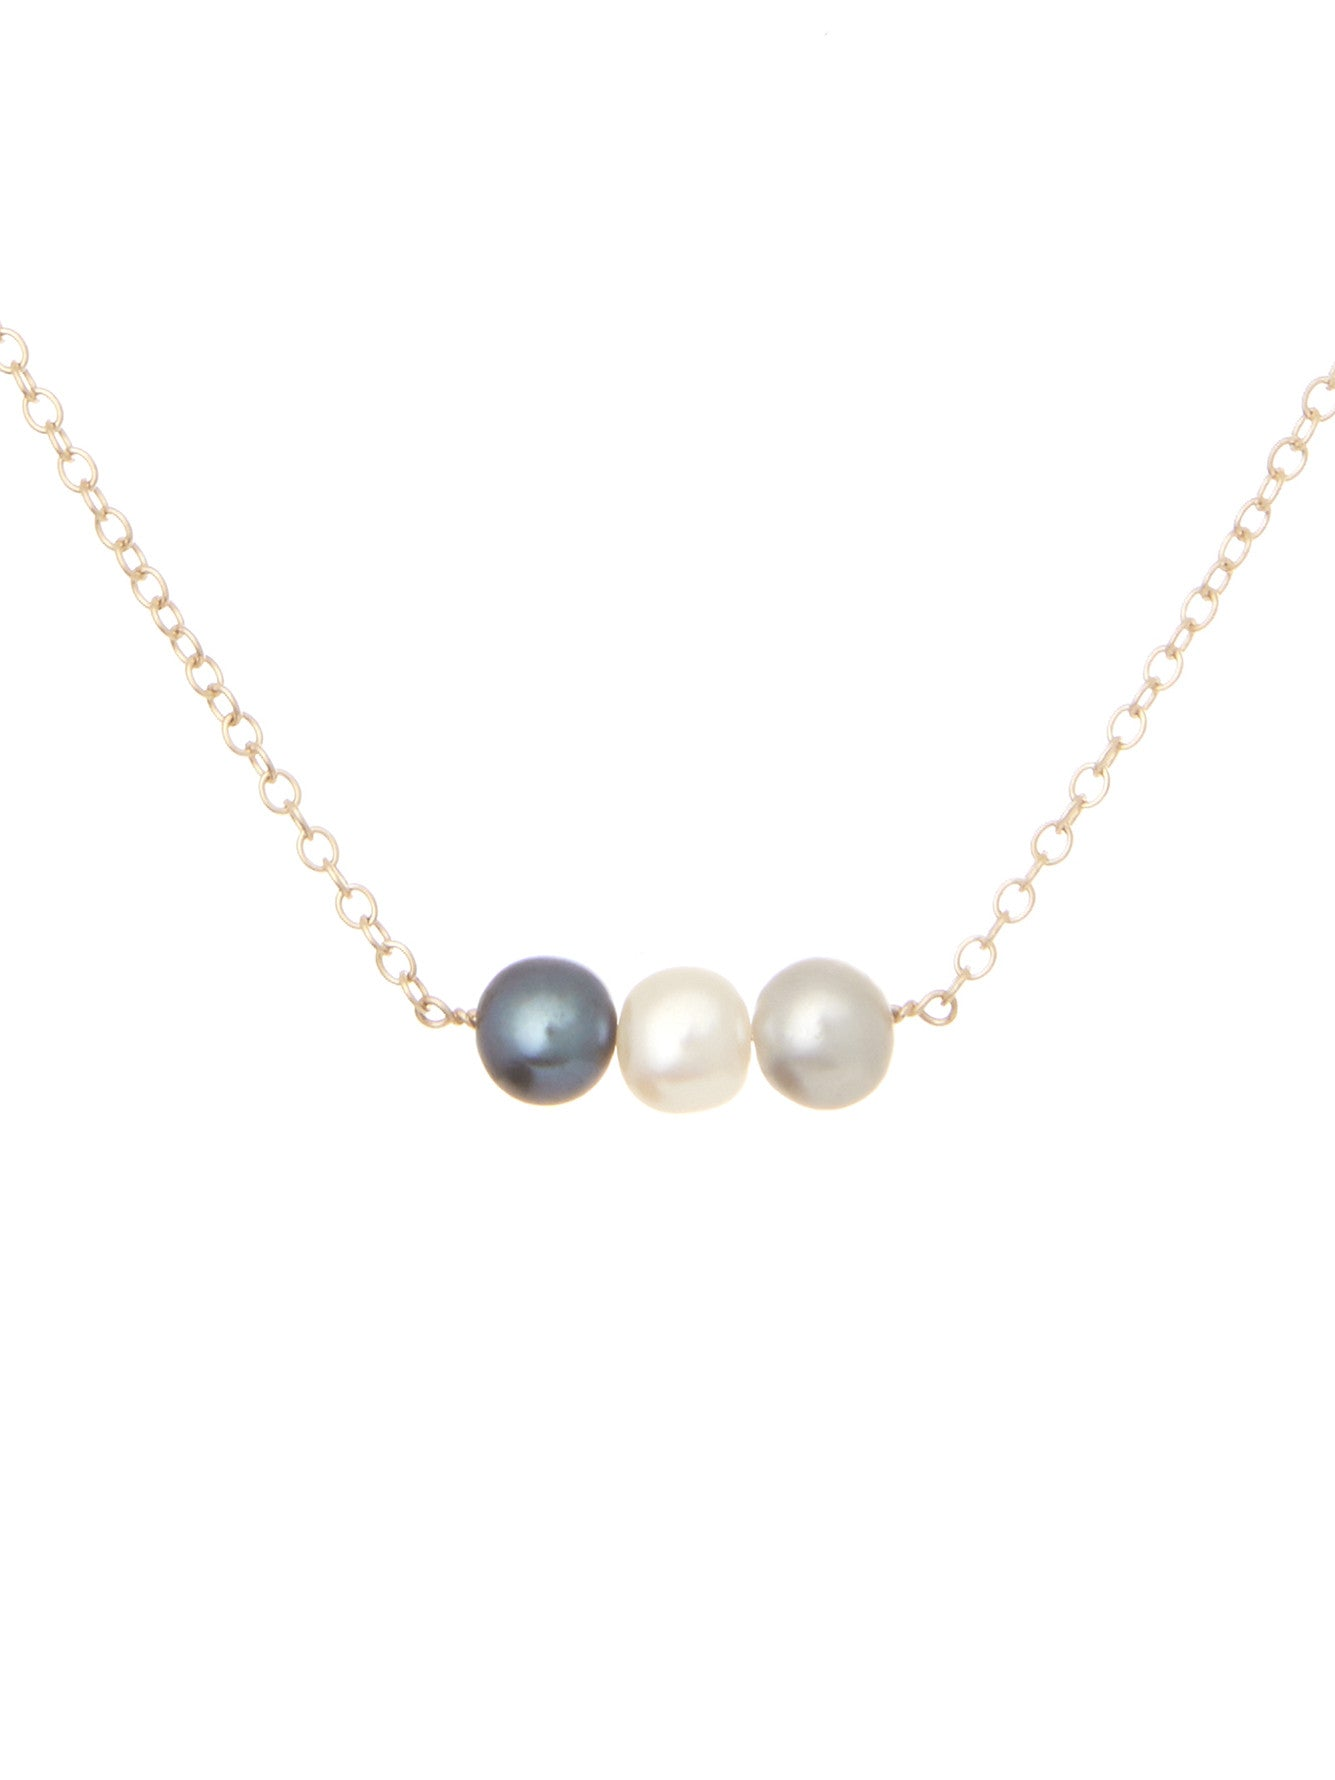 solana img goud necklace gold biwa product com jewellery pearl parel yolandejimenez